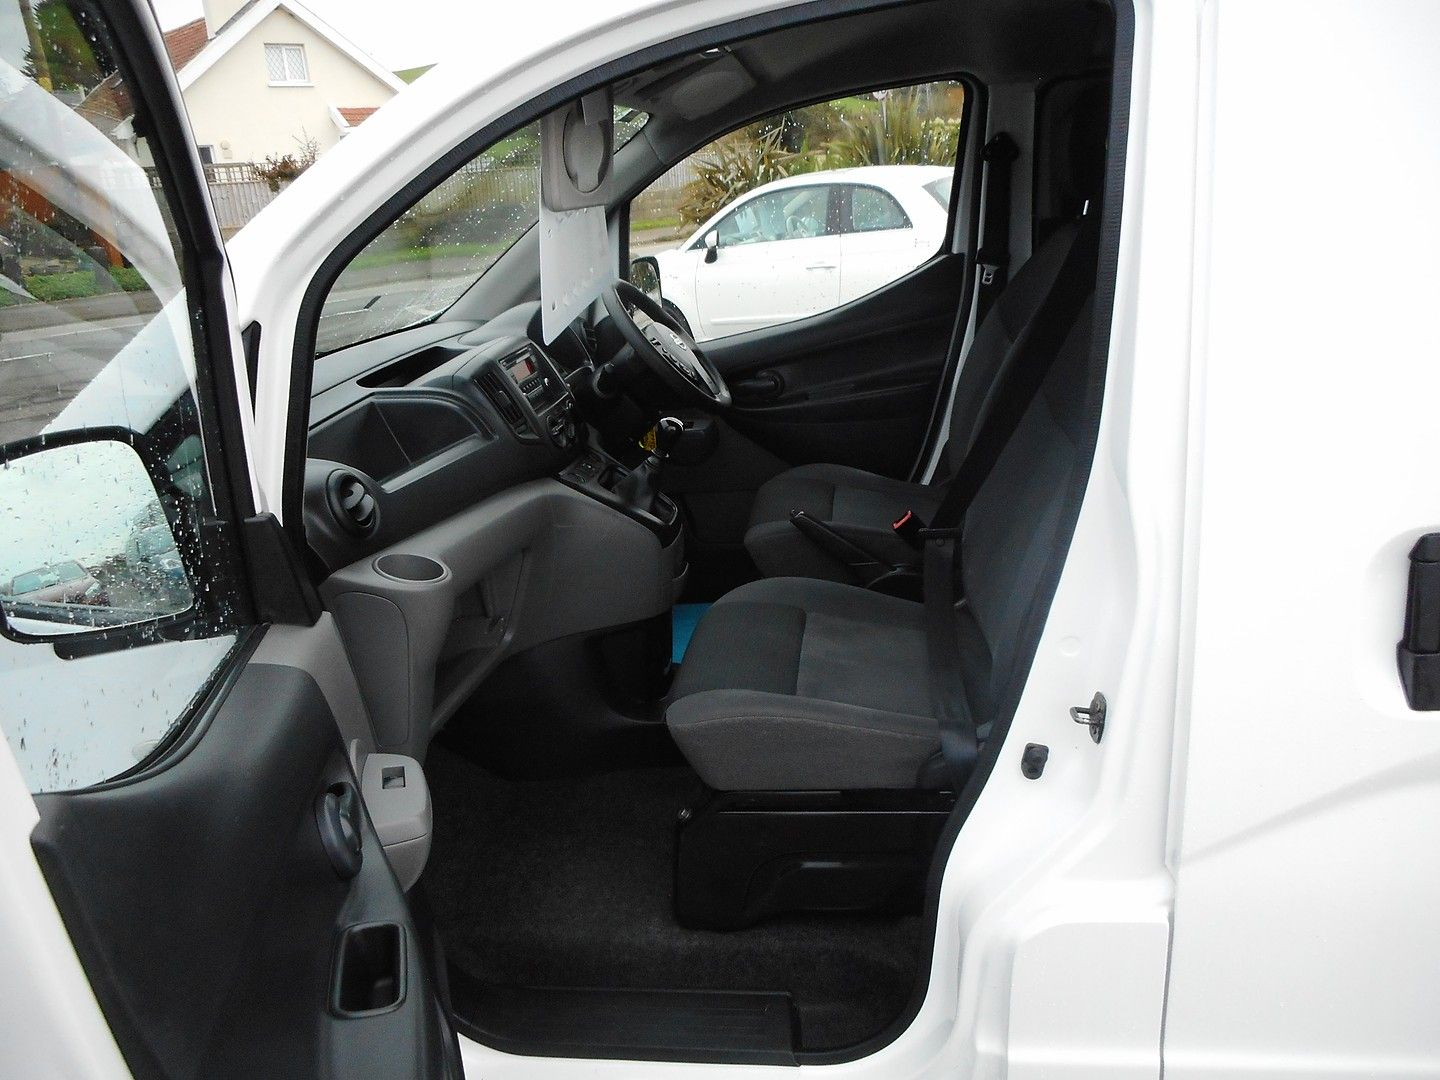 NISSAN NV200 Acenta 1.5 dCi 110PS (2015) - Picture 17